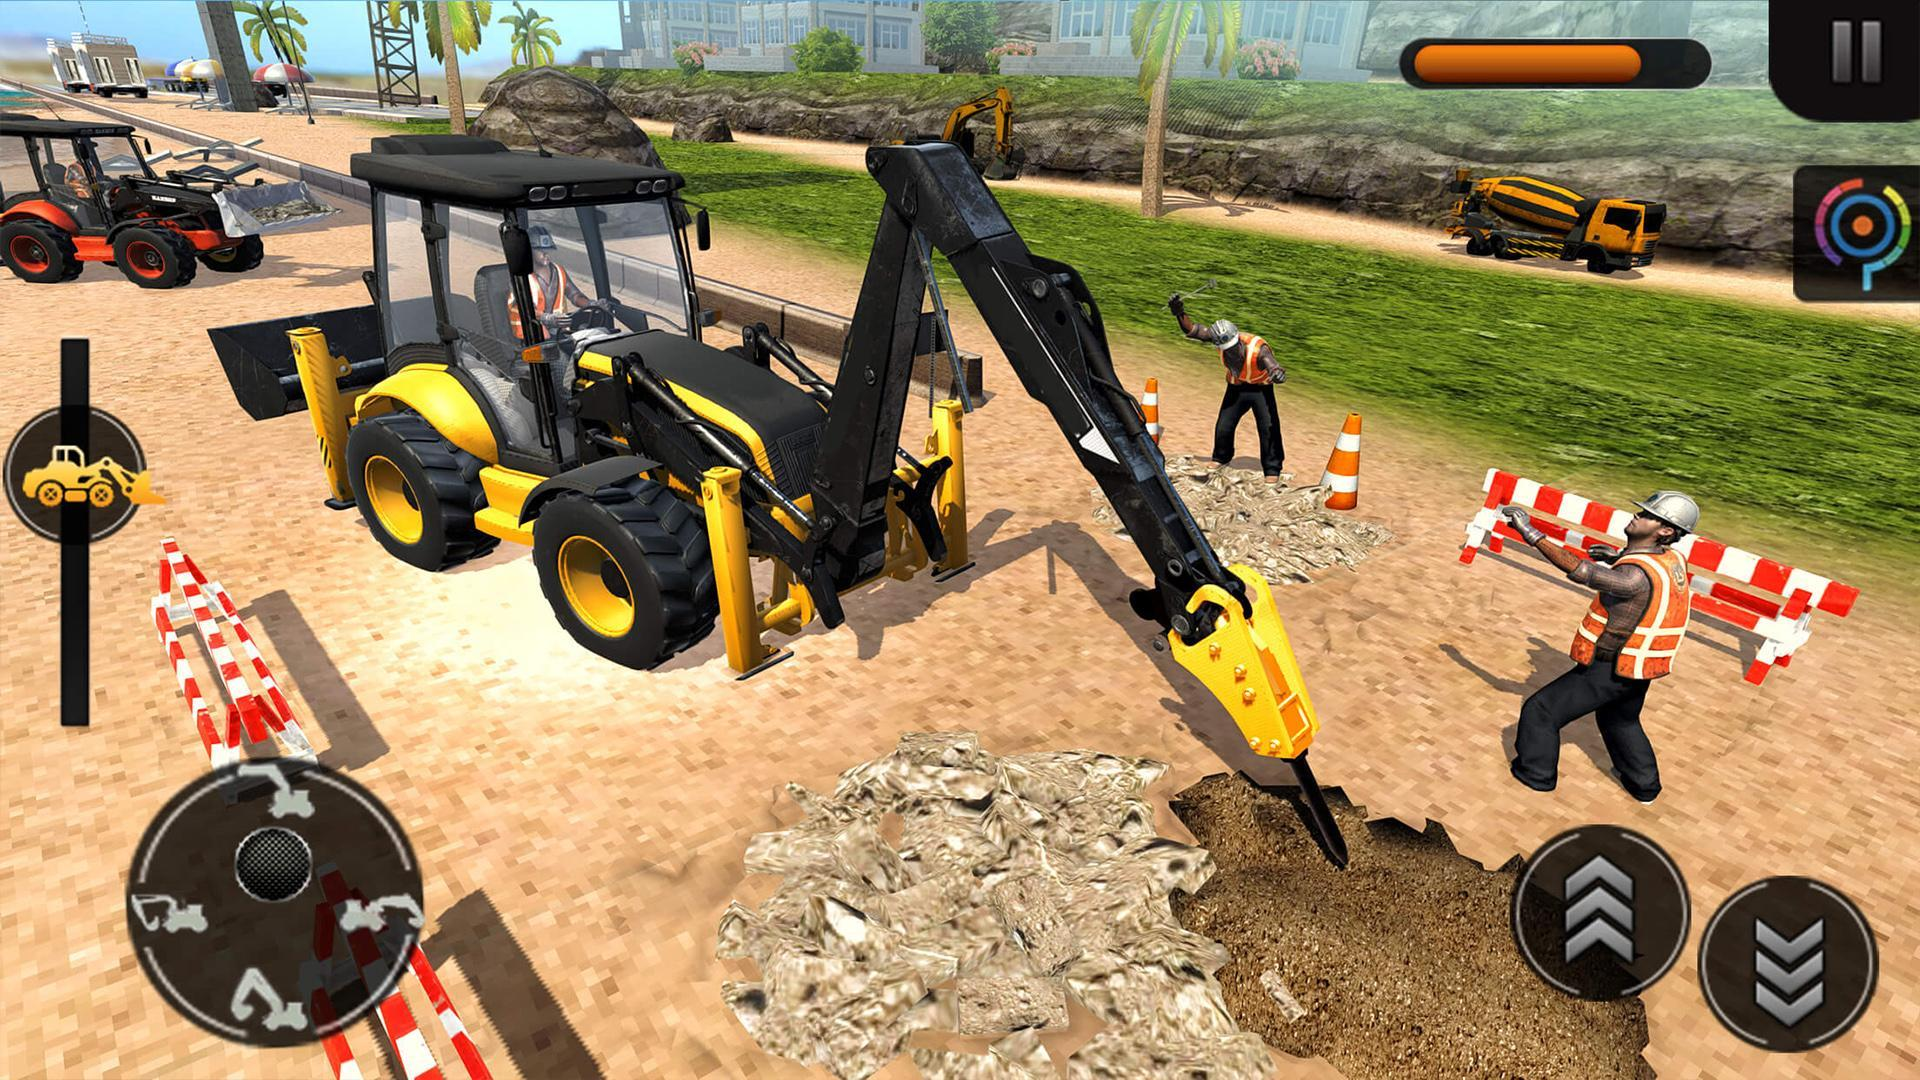 Beach House Builder Construction Games For Android Apk Download